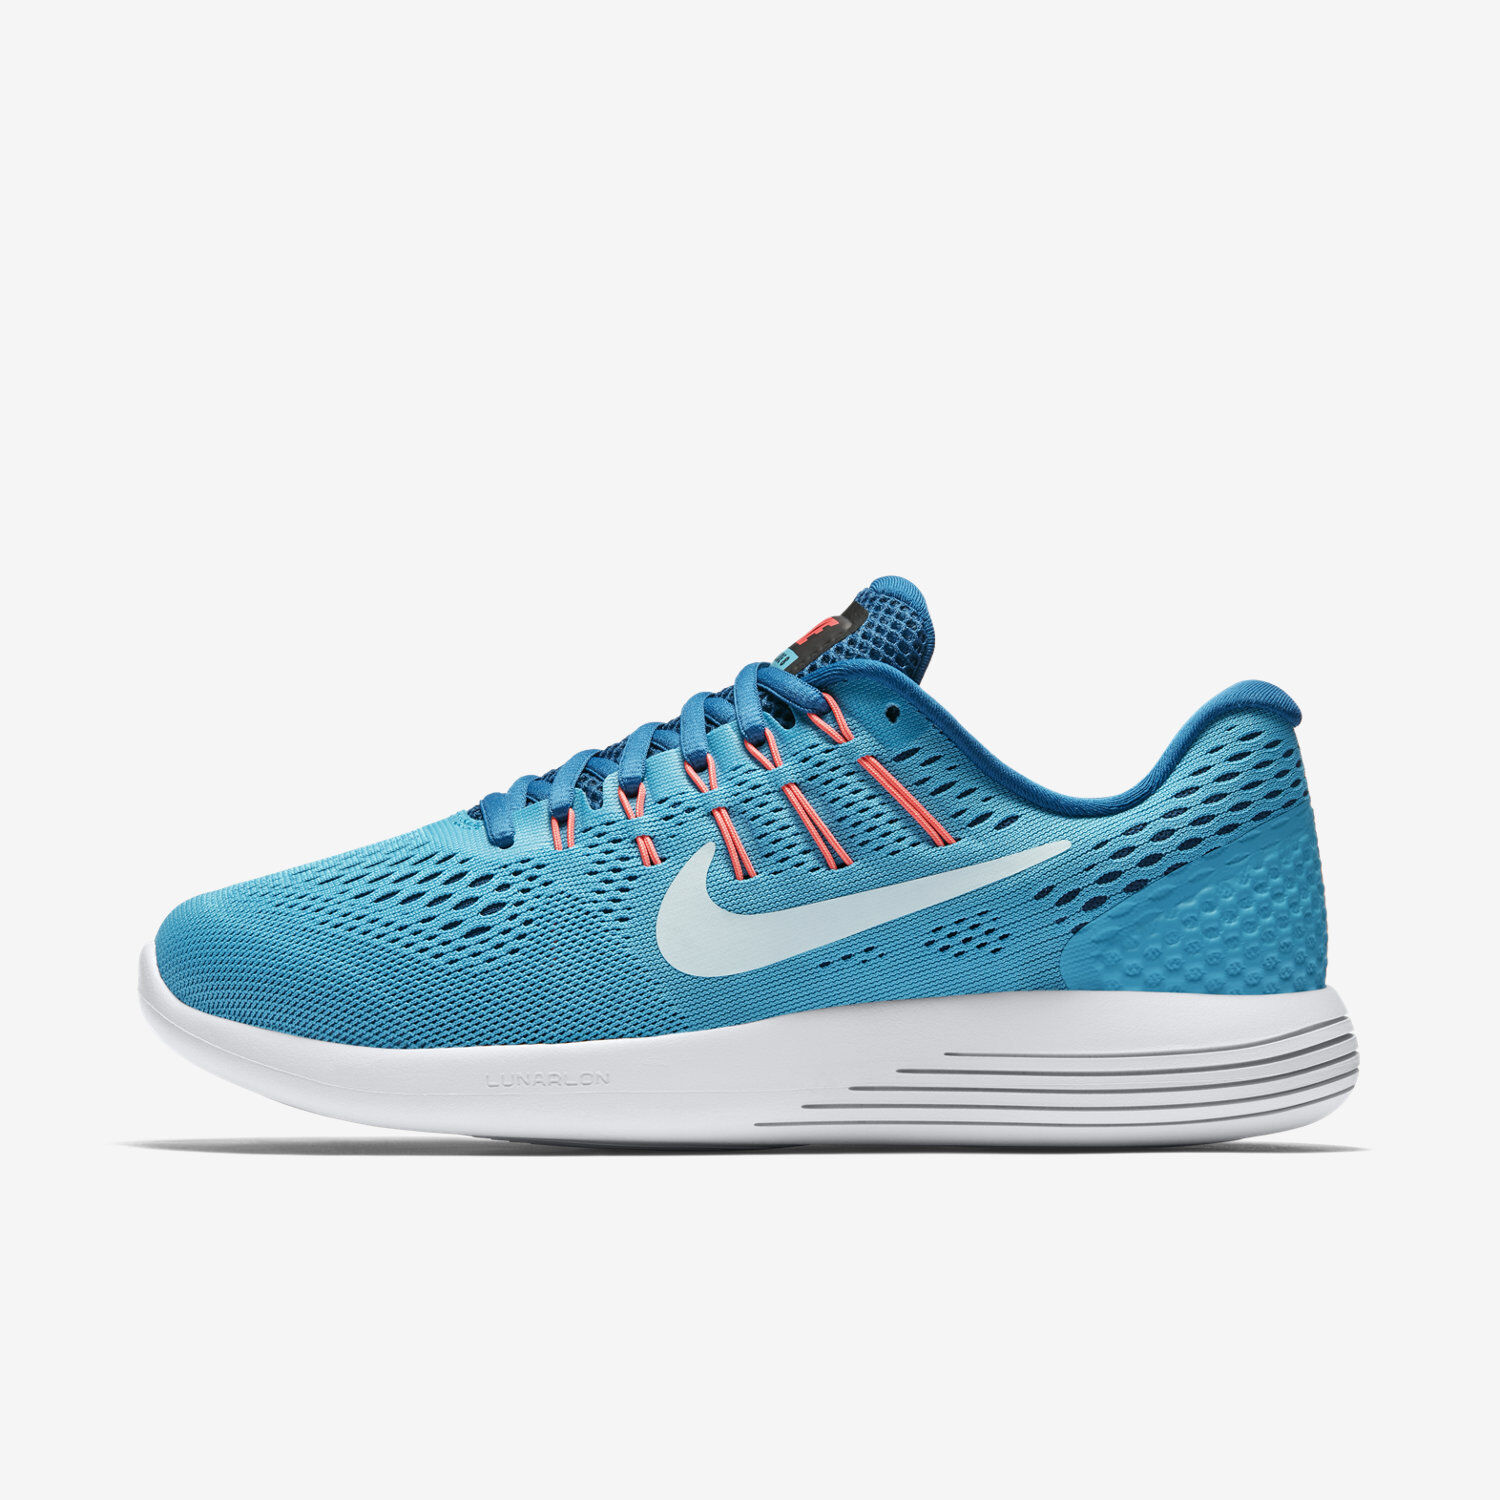 Womens Nike Lunarglide 8 Sz 7 Chlorine Blue/Blue 843726-405 FREE SHIPPING Special limited time